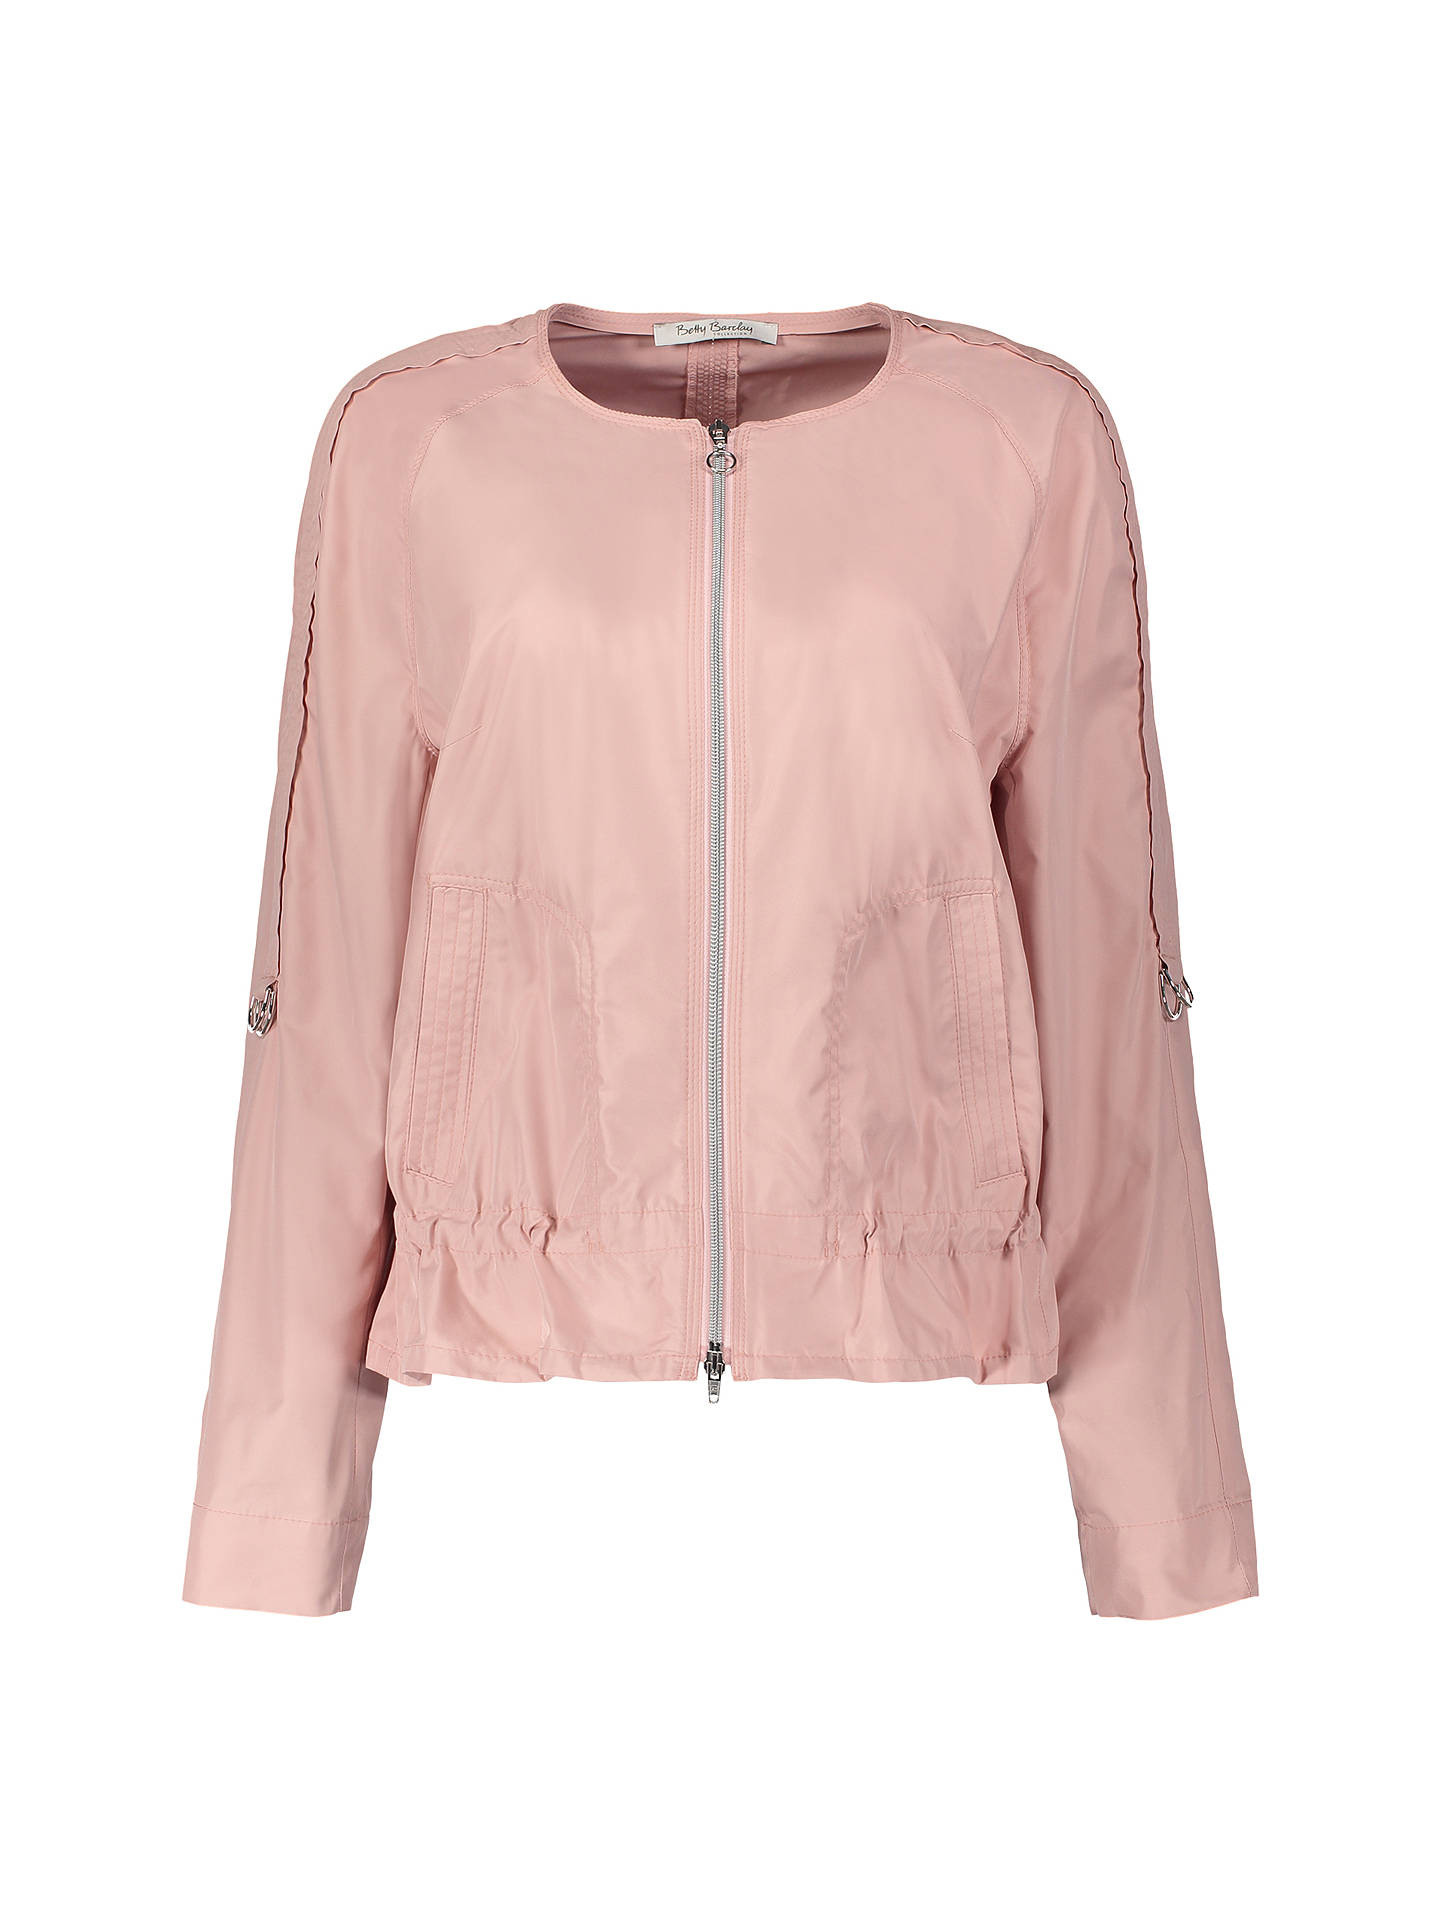 Buy Betty Barclay Two-Way Zip Jacket, Powder Rose, 10 Online at johnlewis.com